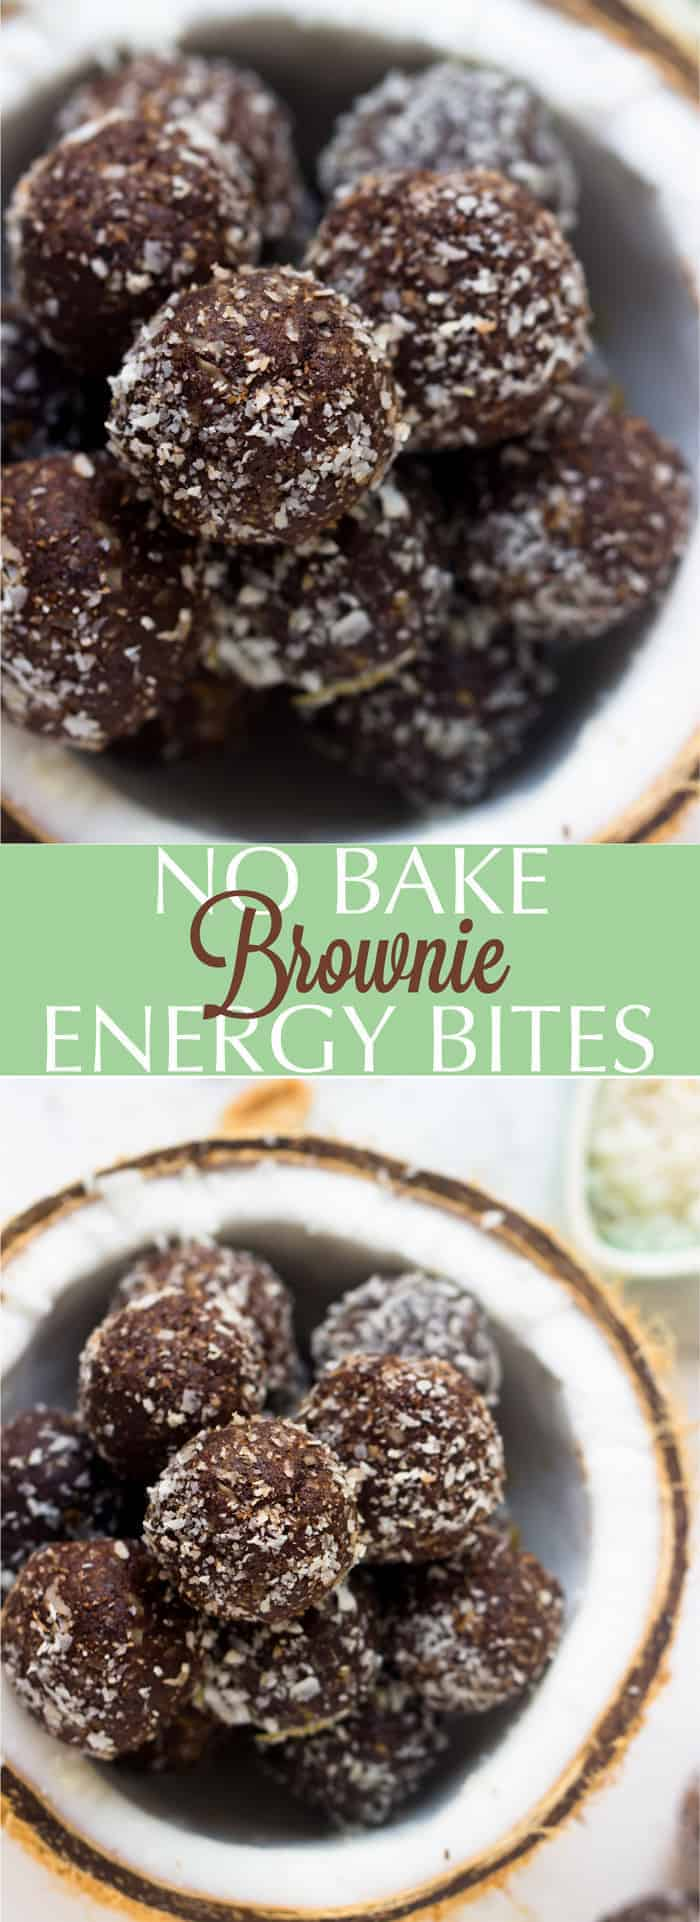 These No Bake Brownie Energy Bites are made with only 5 ingredients, vegan and gluten-free and are a perfect quick healthy breakfast or snack!